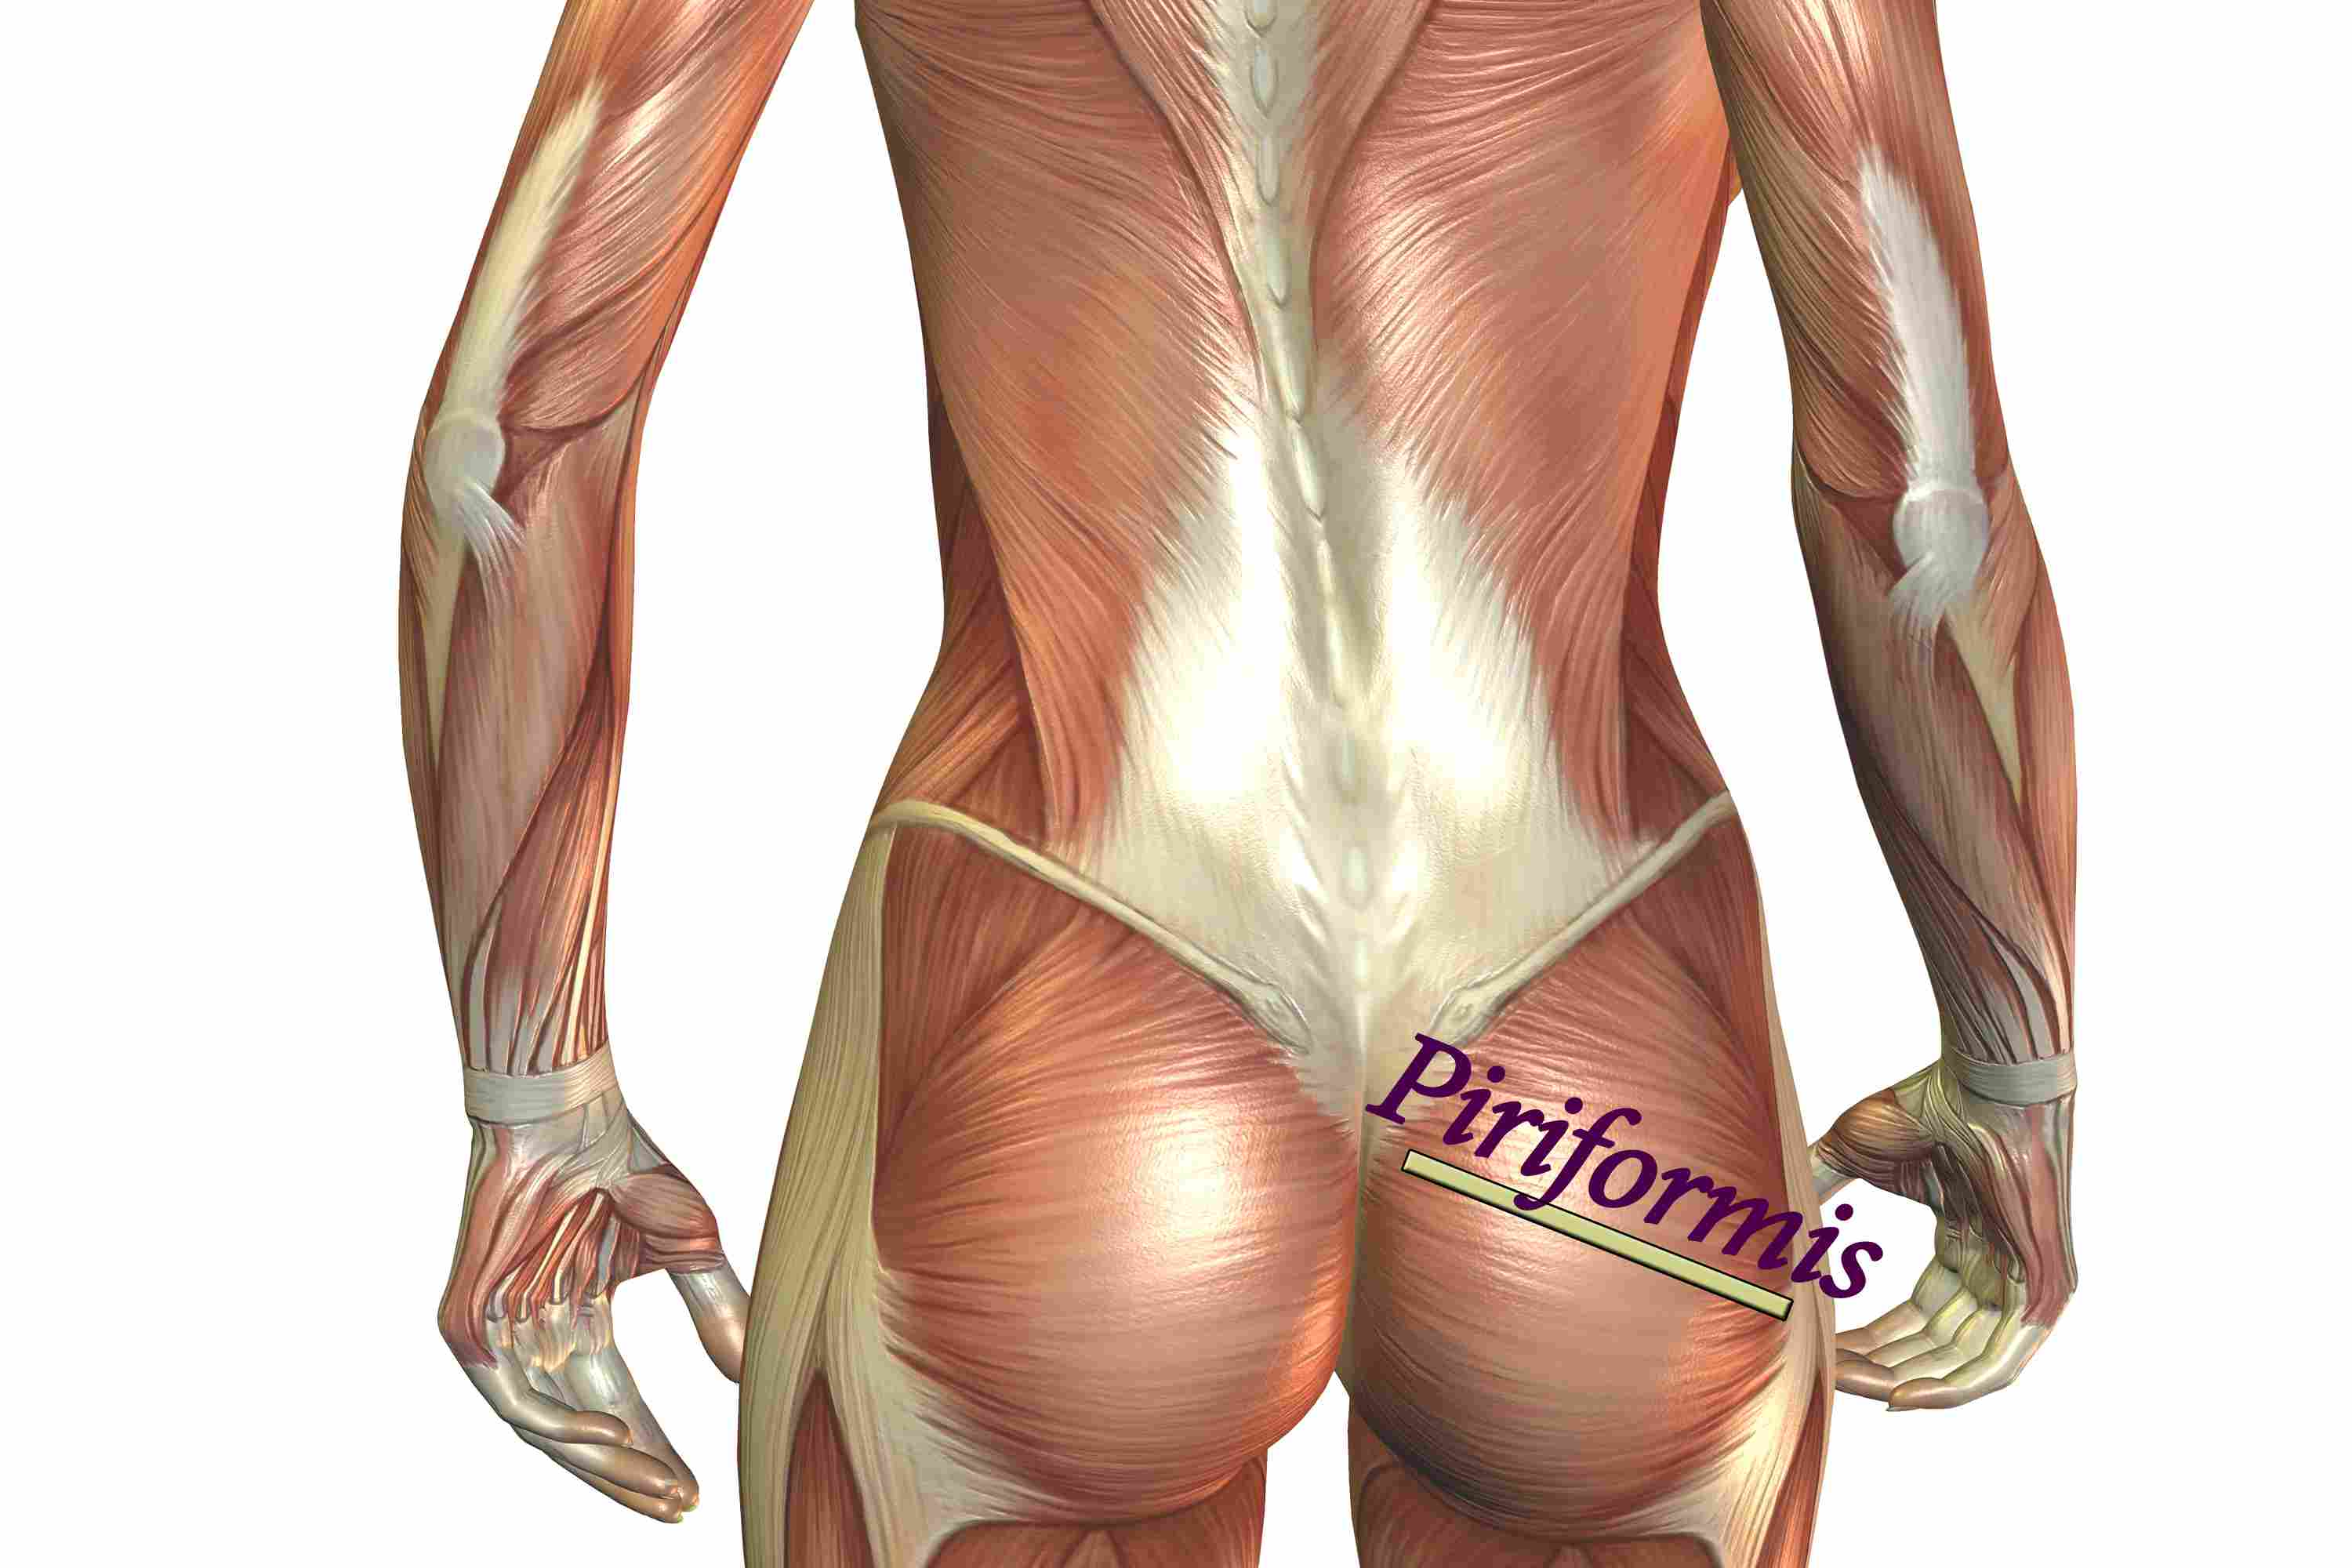 Most Common Causes Of Sciatica